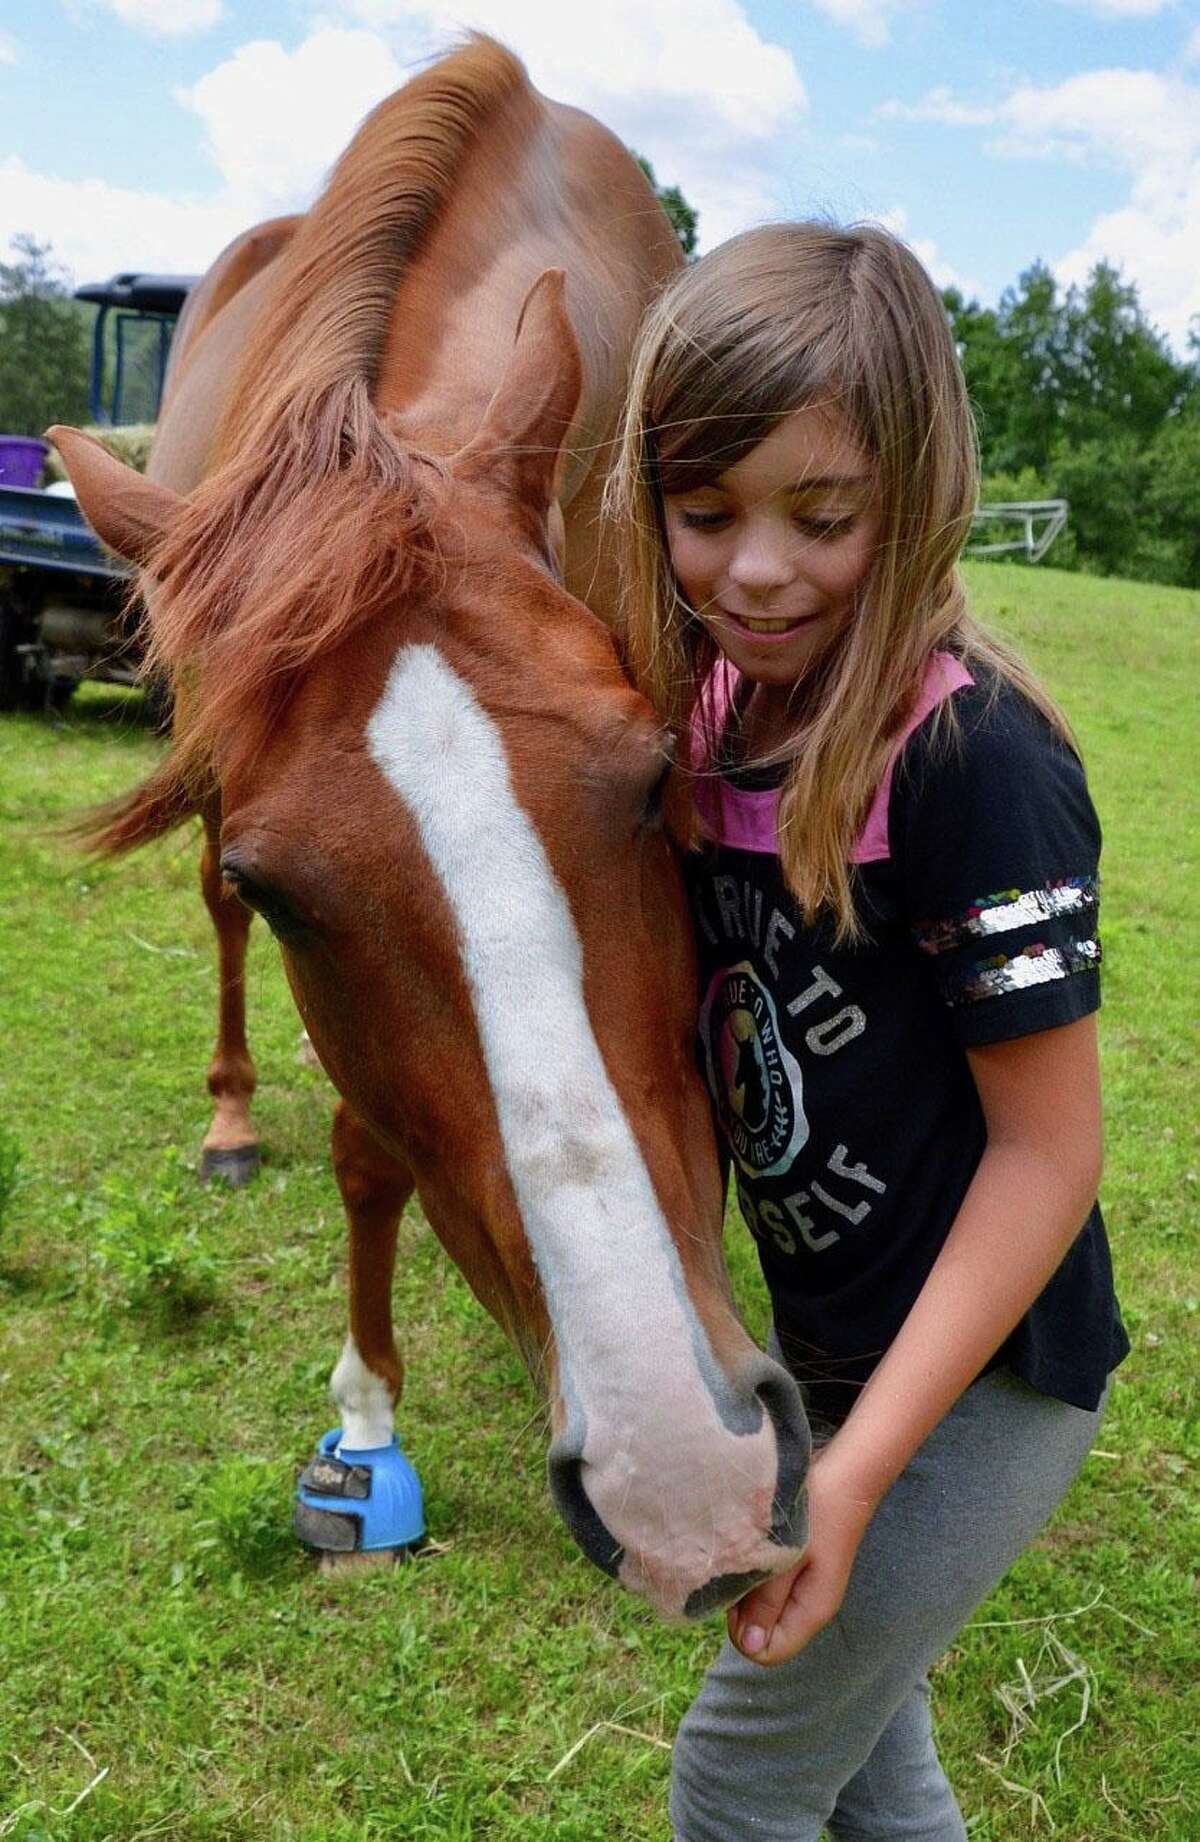 The Humane Organization Representing Suffering Equines (H.O.R.S.E. of Connecticut) will have its annual